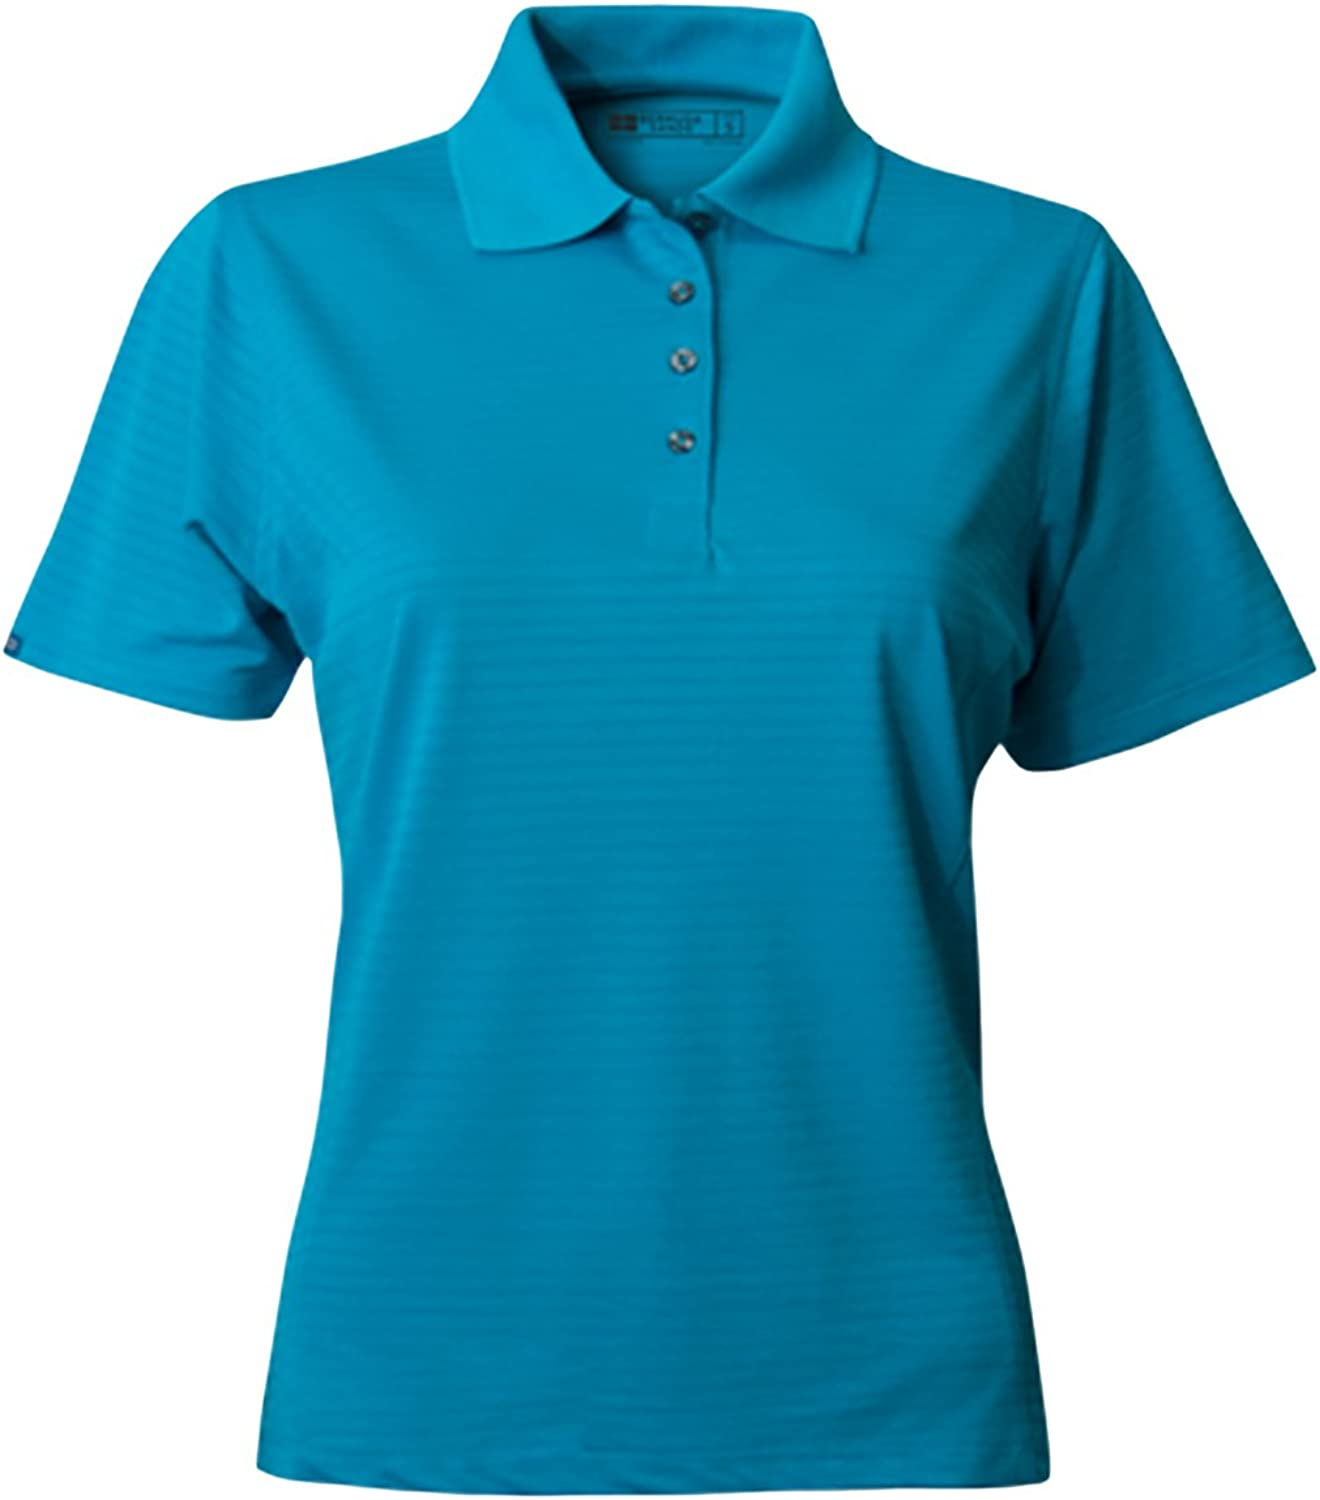 Bermuda Sands Women's Shadow Performance Polo Shirt